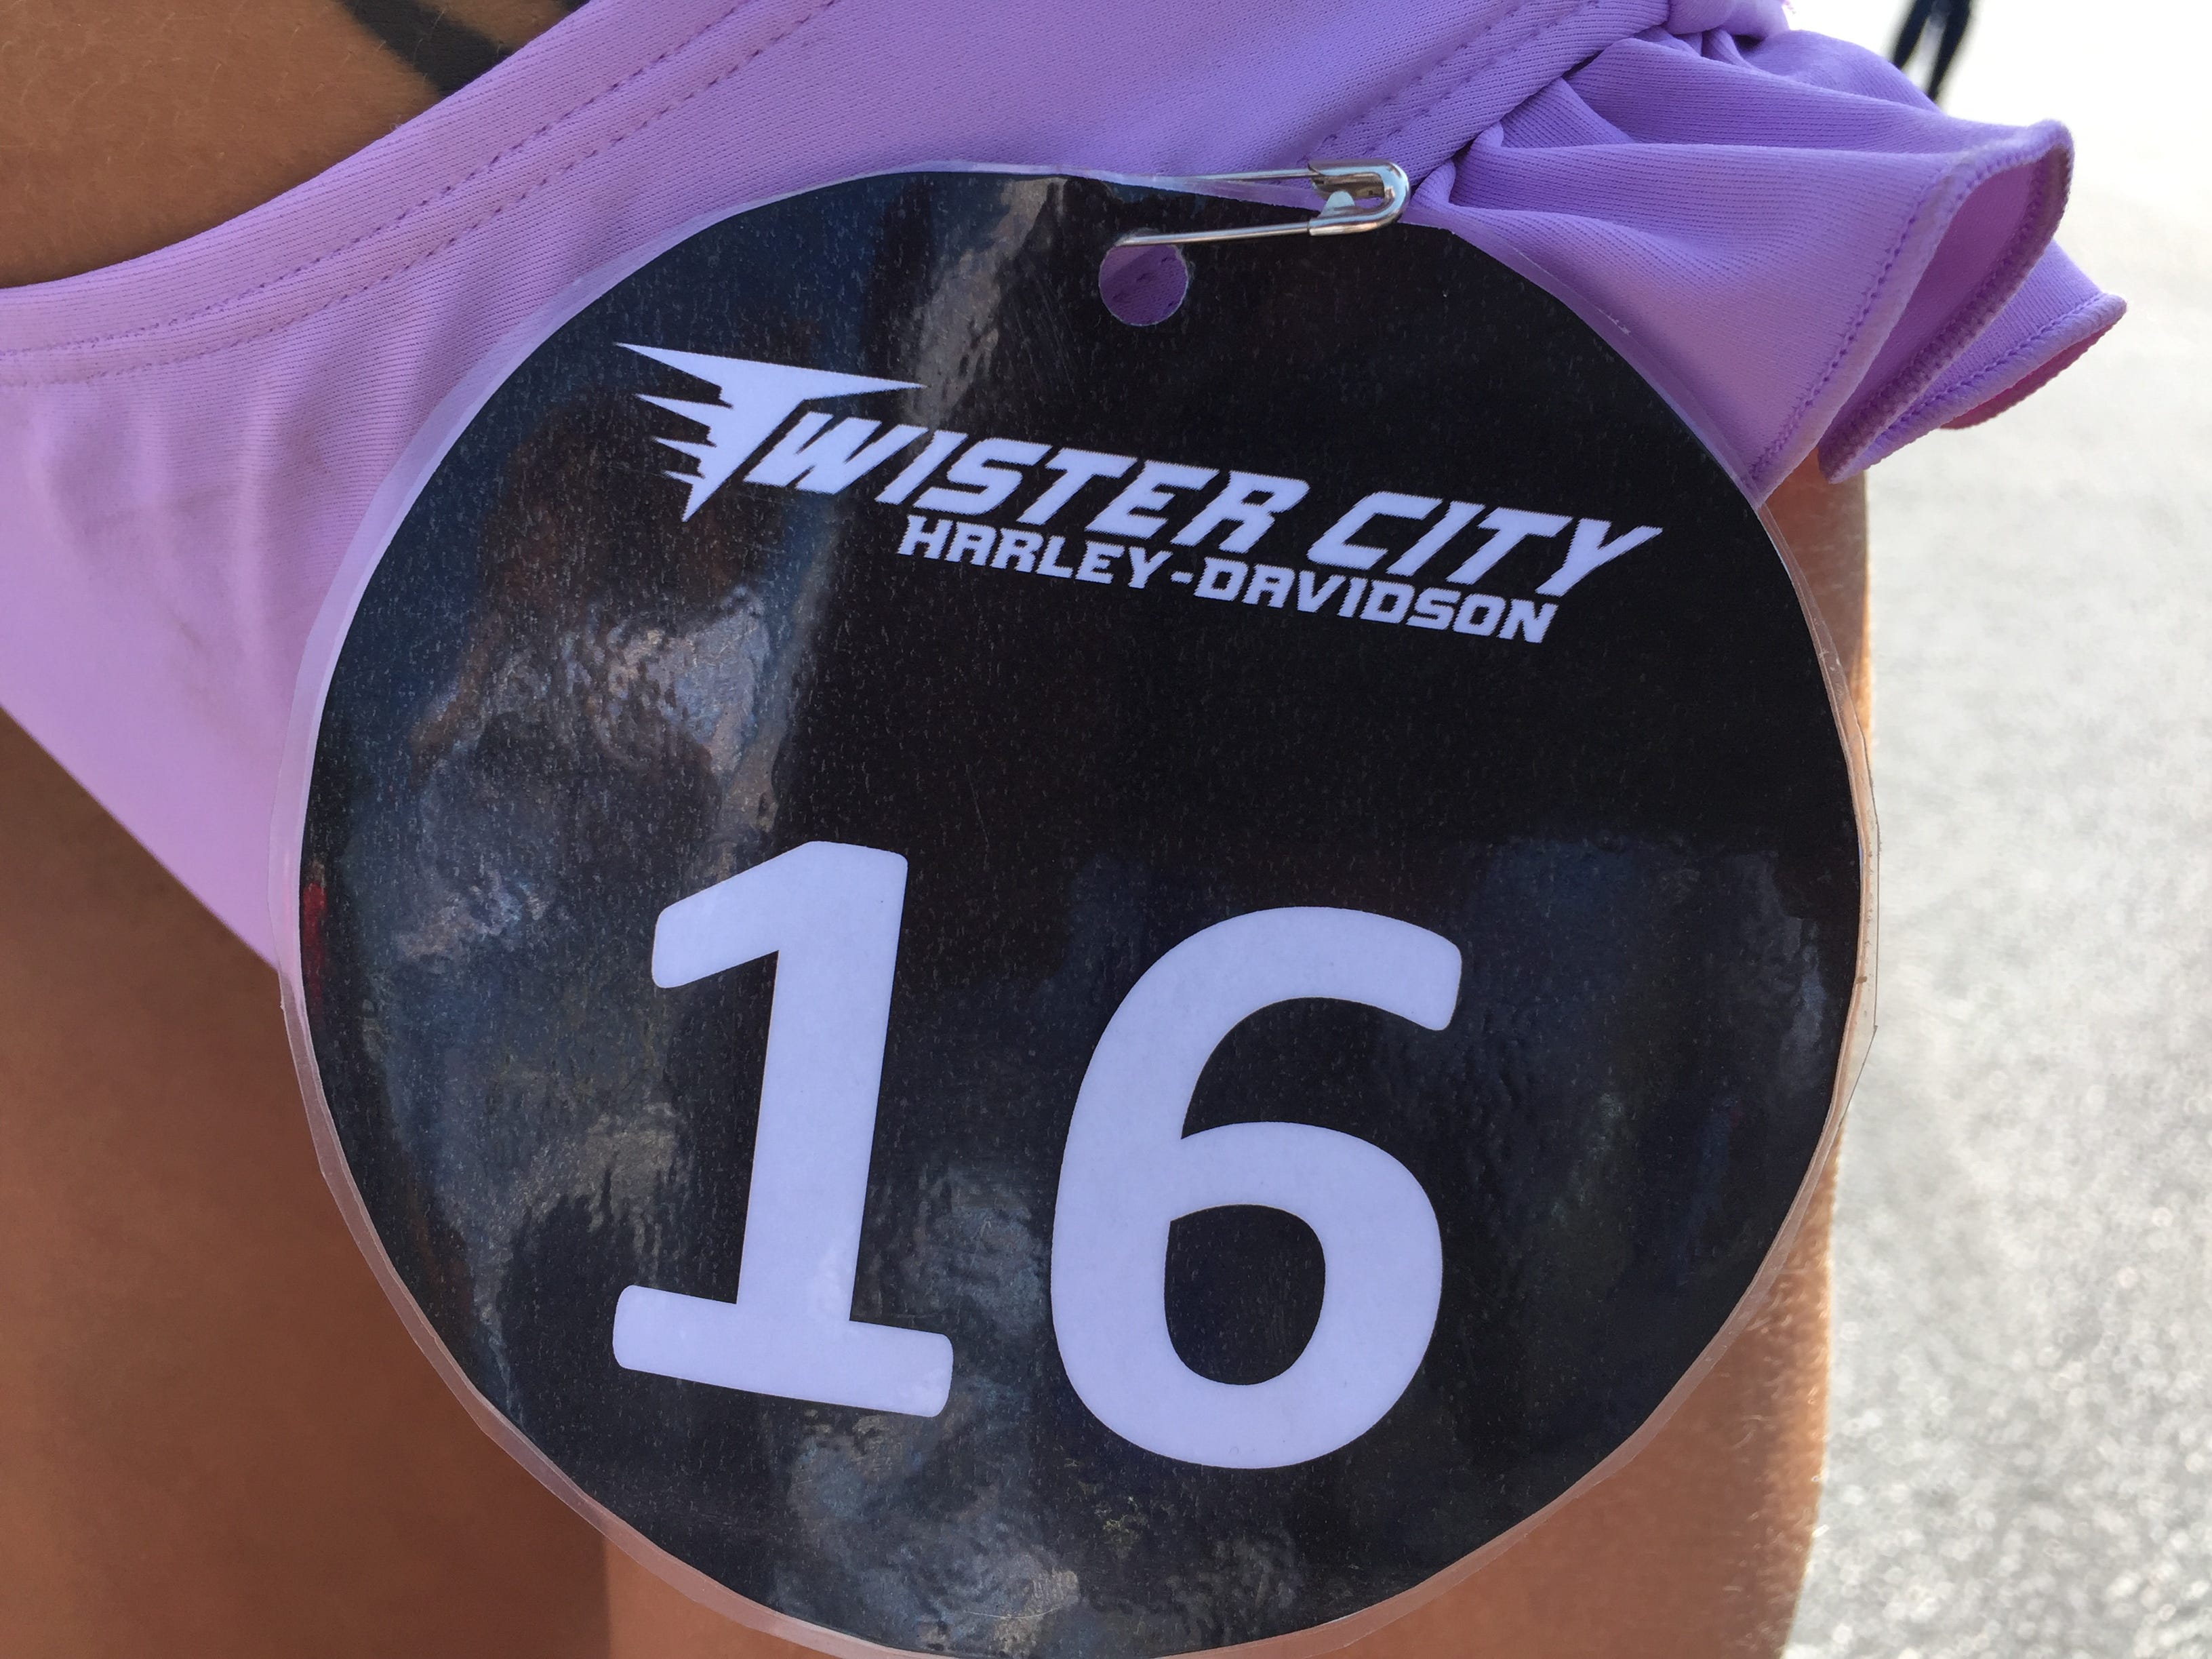 Closeup of Jenny Figueroa's number that customers could use if they wanted to vote her in as a model for the Twister City Harley-Davidson annual calendar.